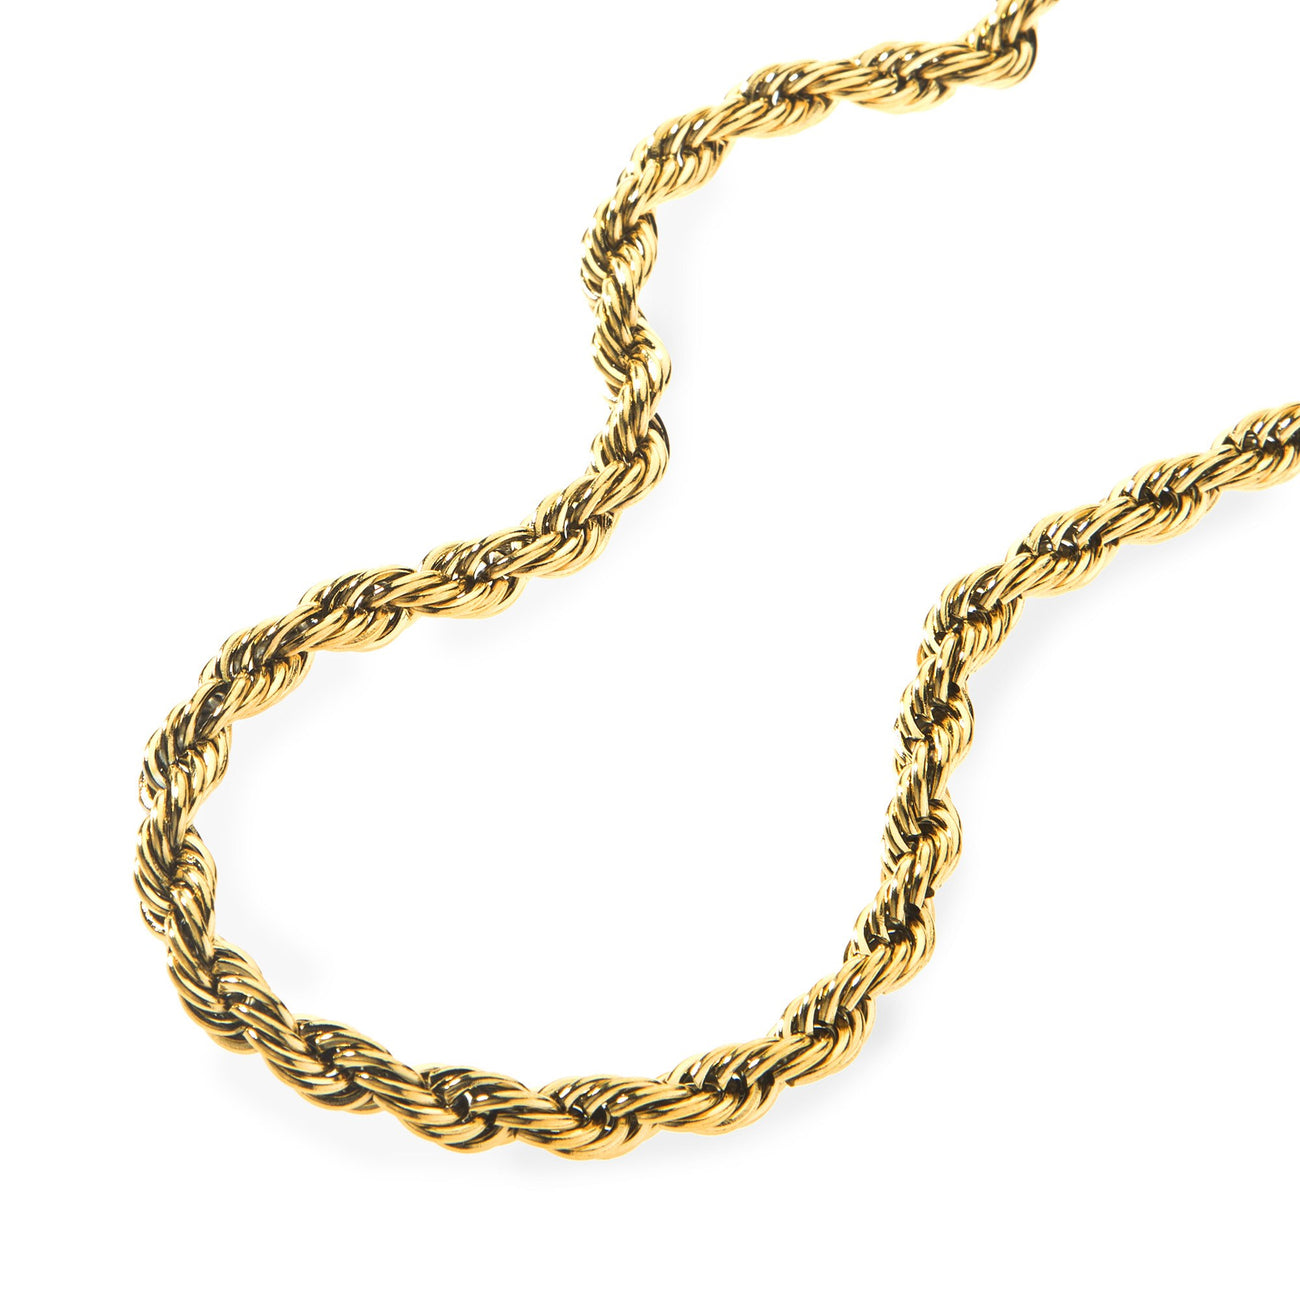 6mm Gold Rope Dookie Chain , Chains, SpicyIce - 2